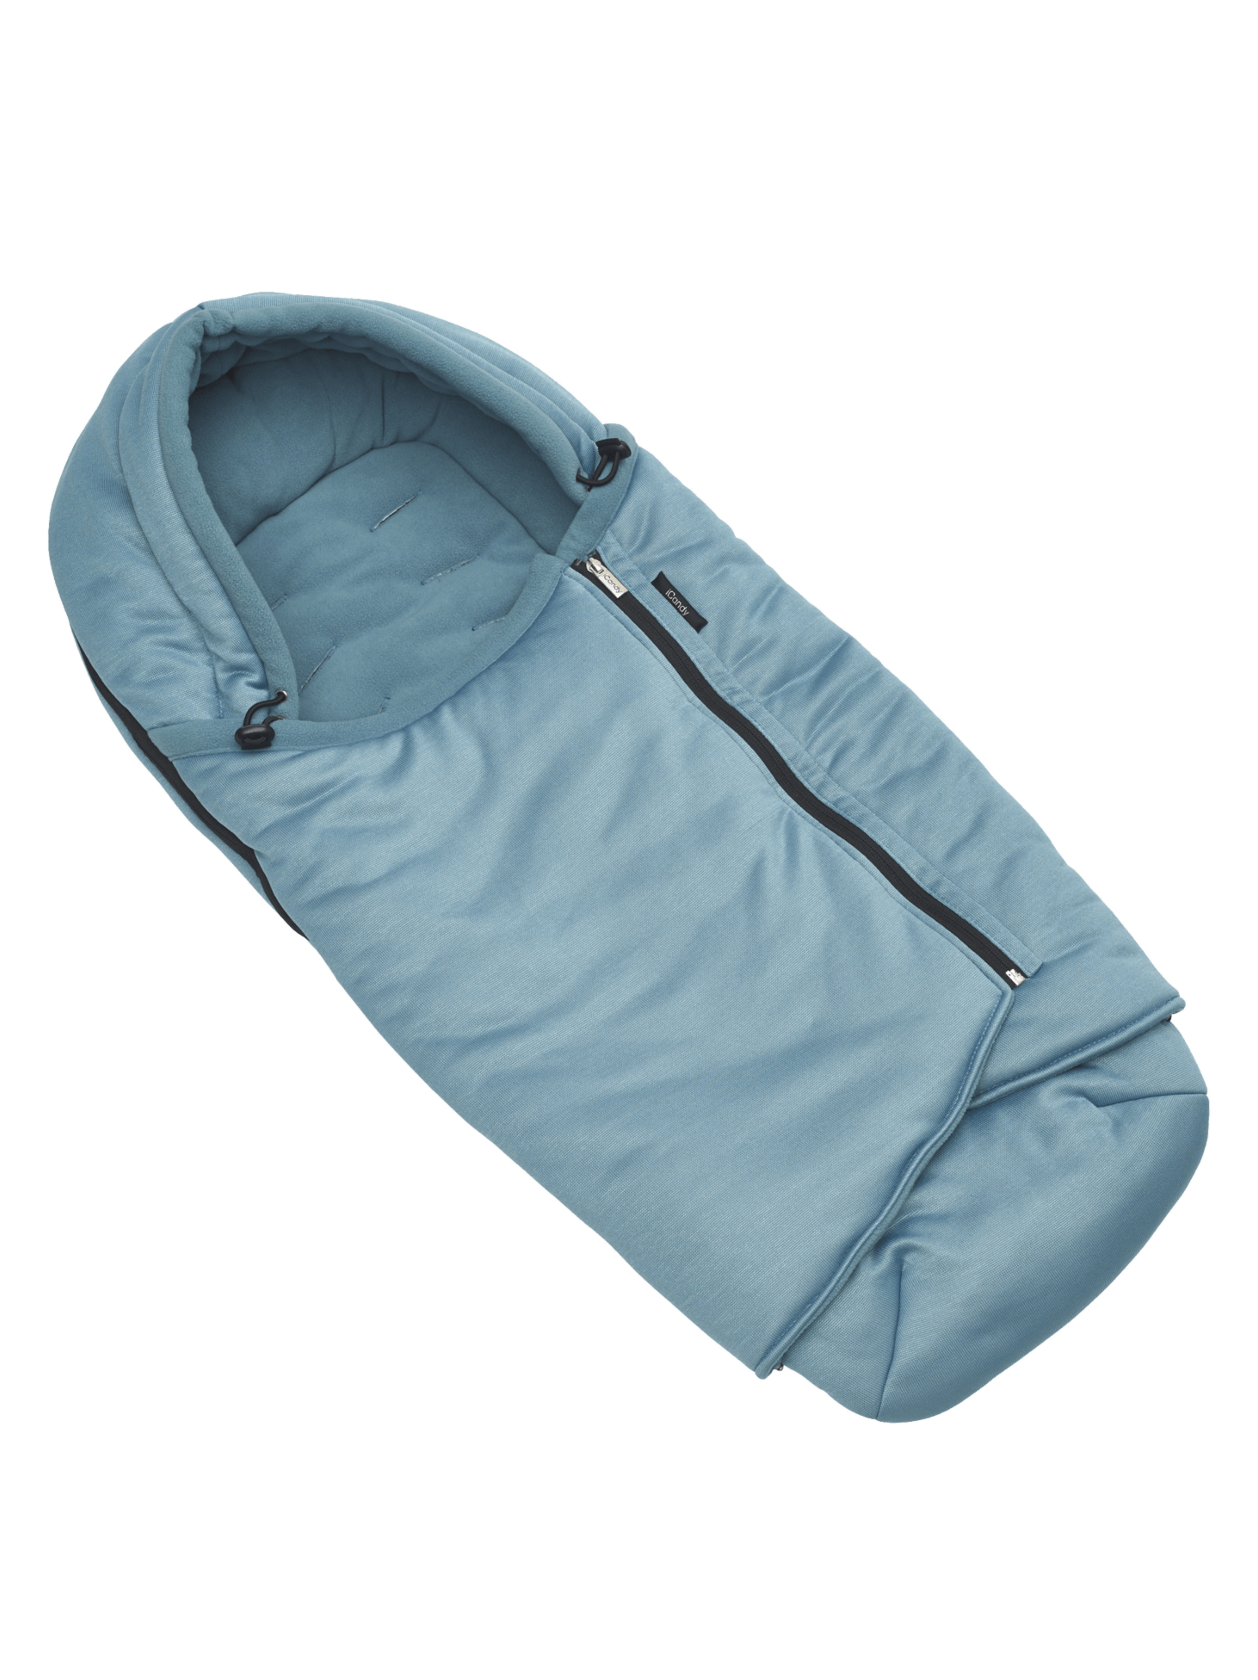 Newborn Pod for iCandy Peach Main Carrycot - Atlantic